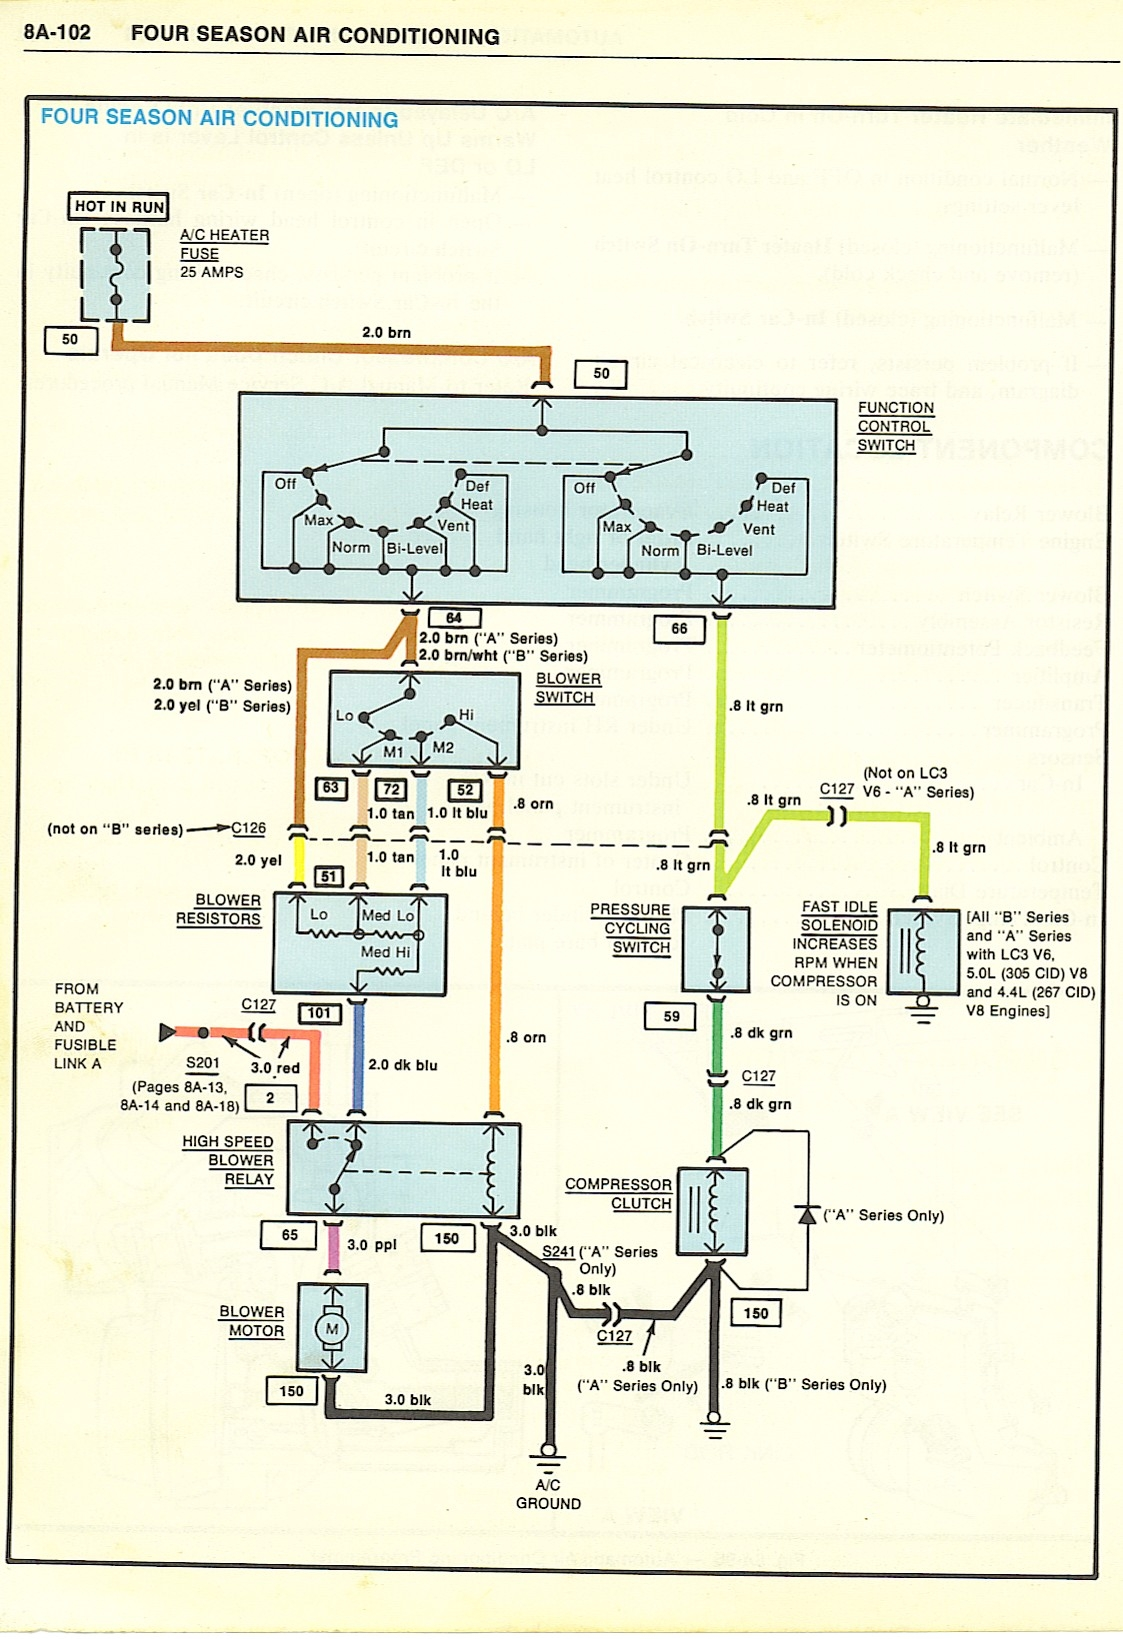 1968 FourSeasonAirConditioner 1968 el camino wiring diagram 72 chevelle wiring diagram \u2022 wiring  at aneh.co